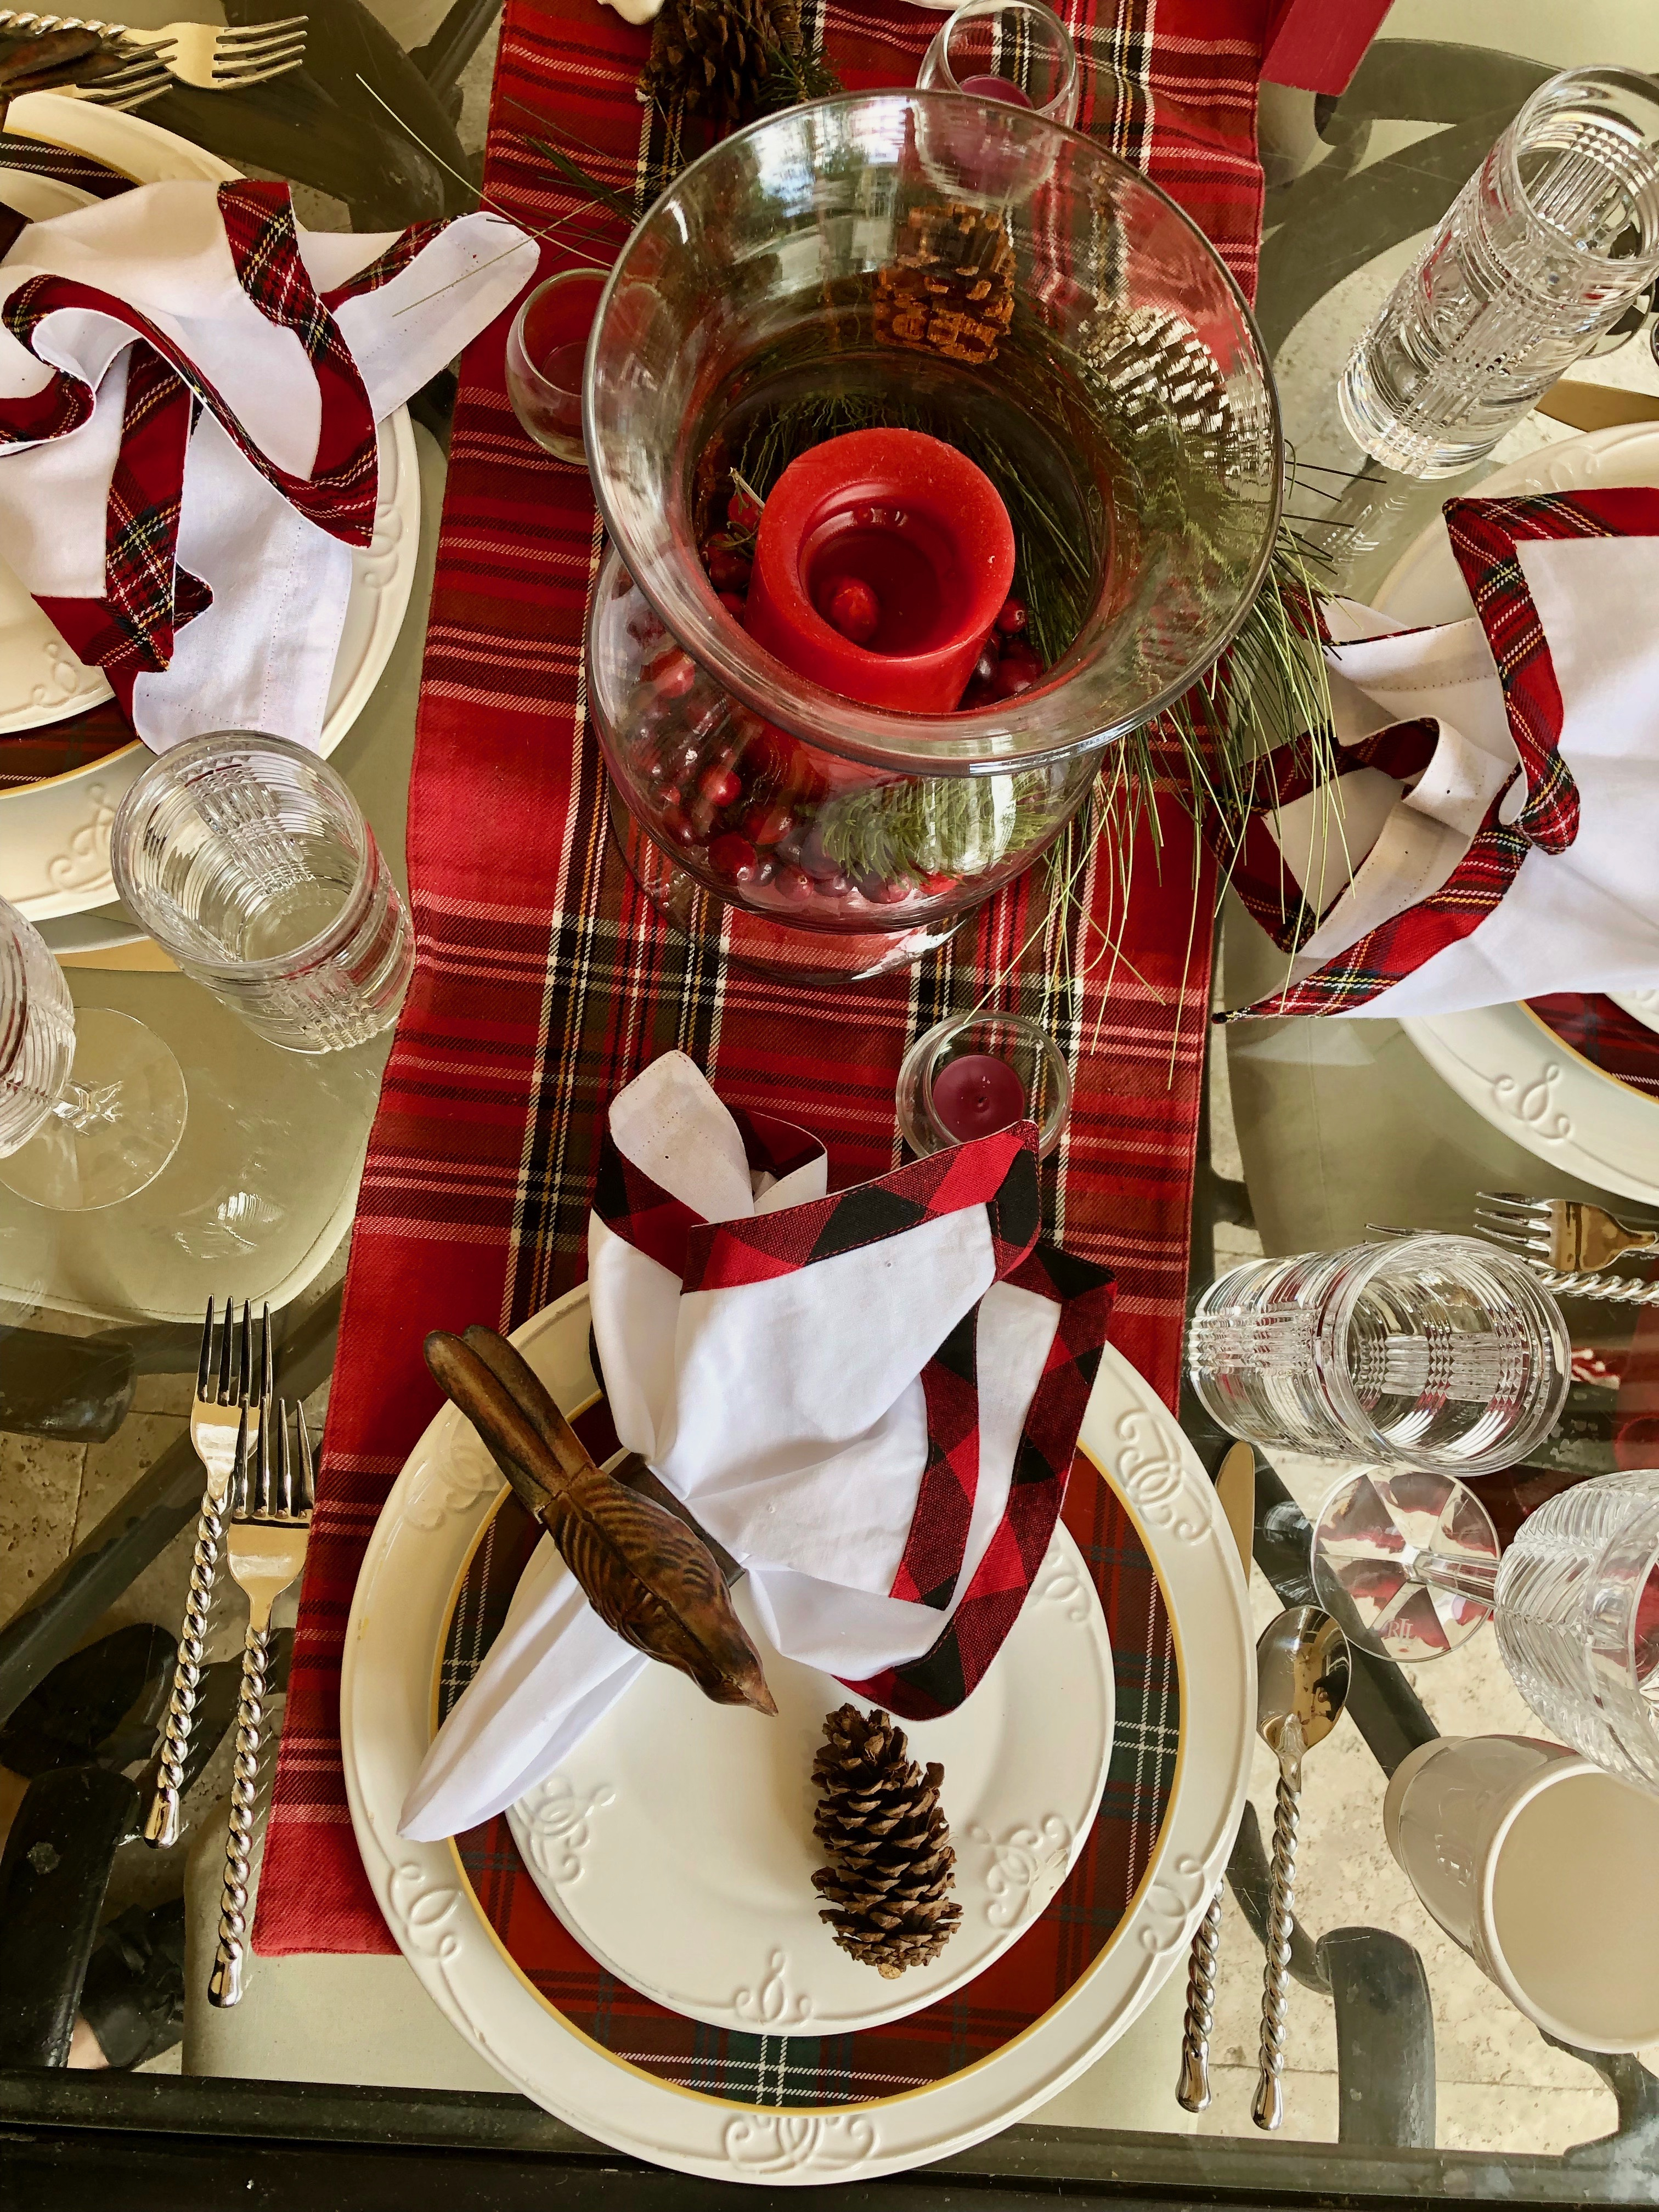 Aerial view of table setting on patio with tartan accents and Ralph Lauren crystal glasses